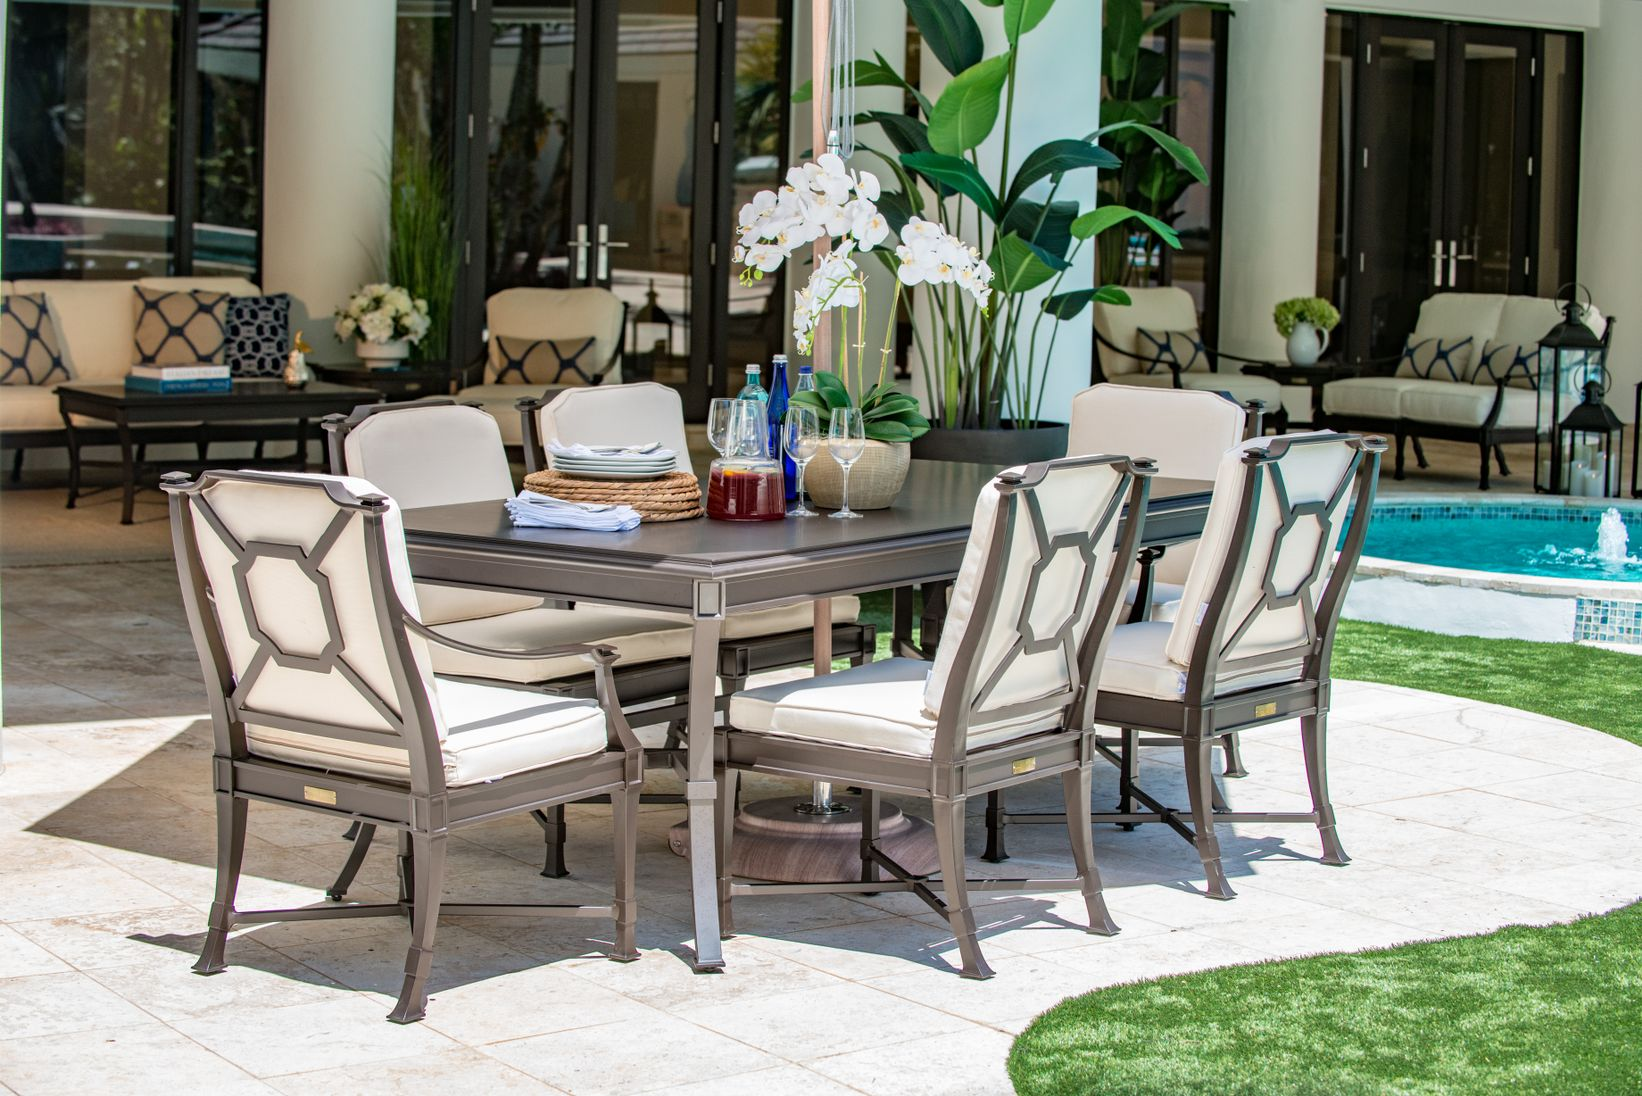 Outdoor Furniture Online Patio Furniture Best Outdoor Patio Furniture Store Online